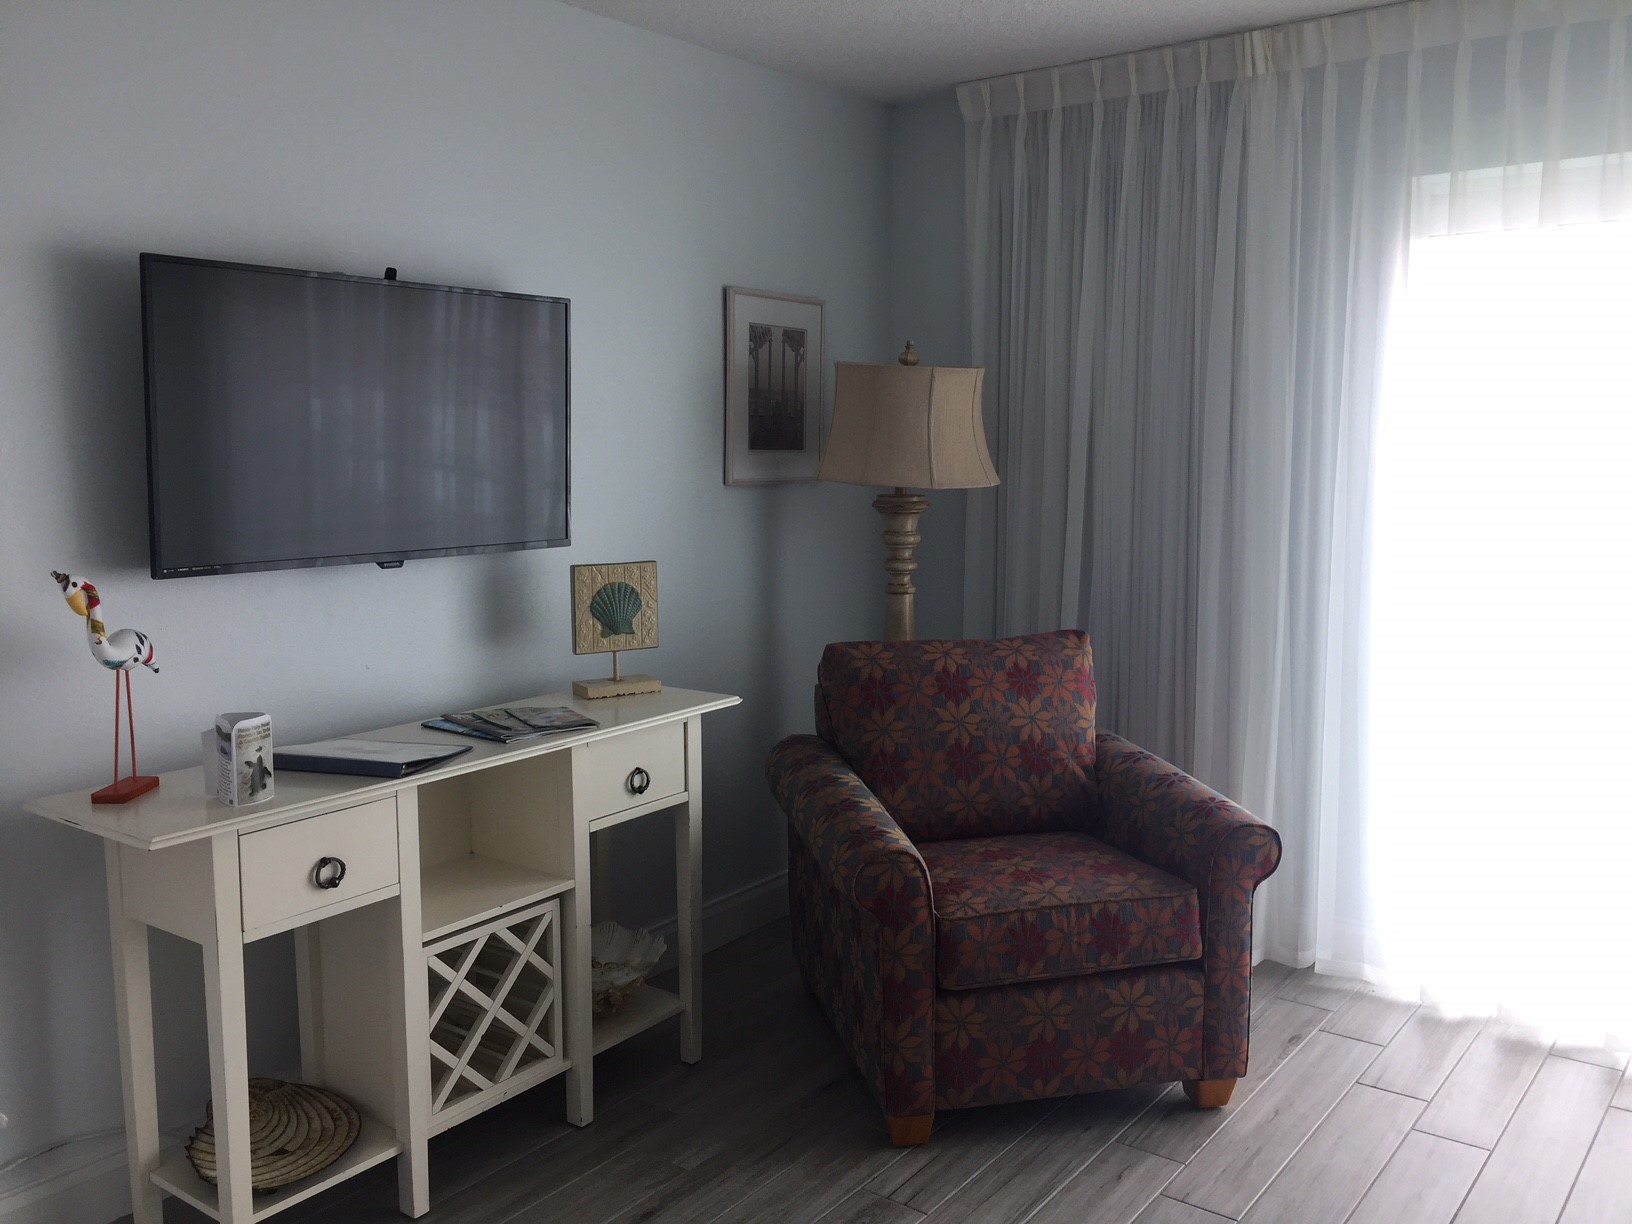 TV in living room and bedroom of 1-bedroom suite